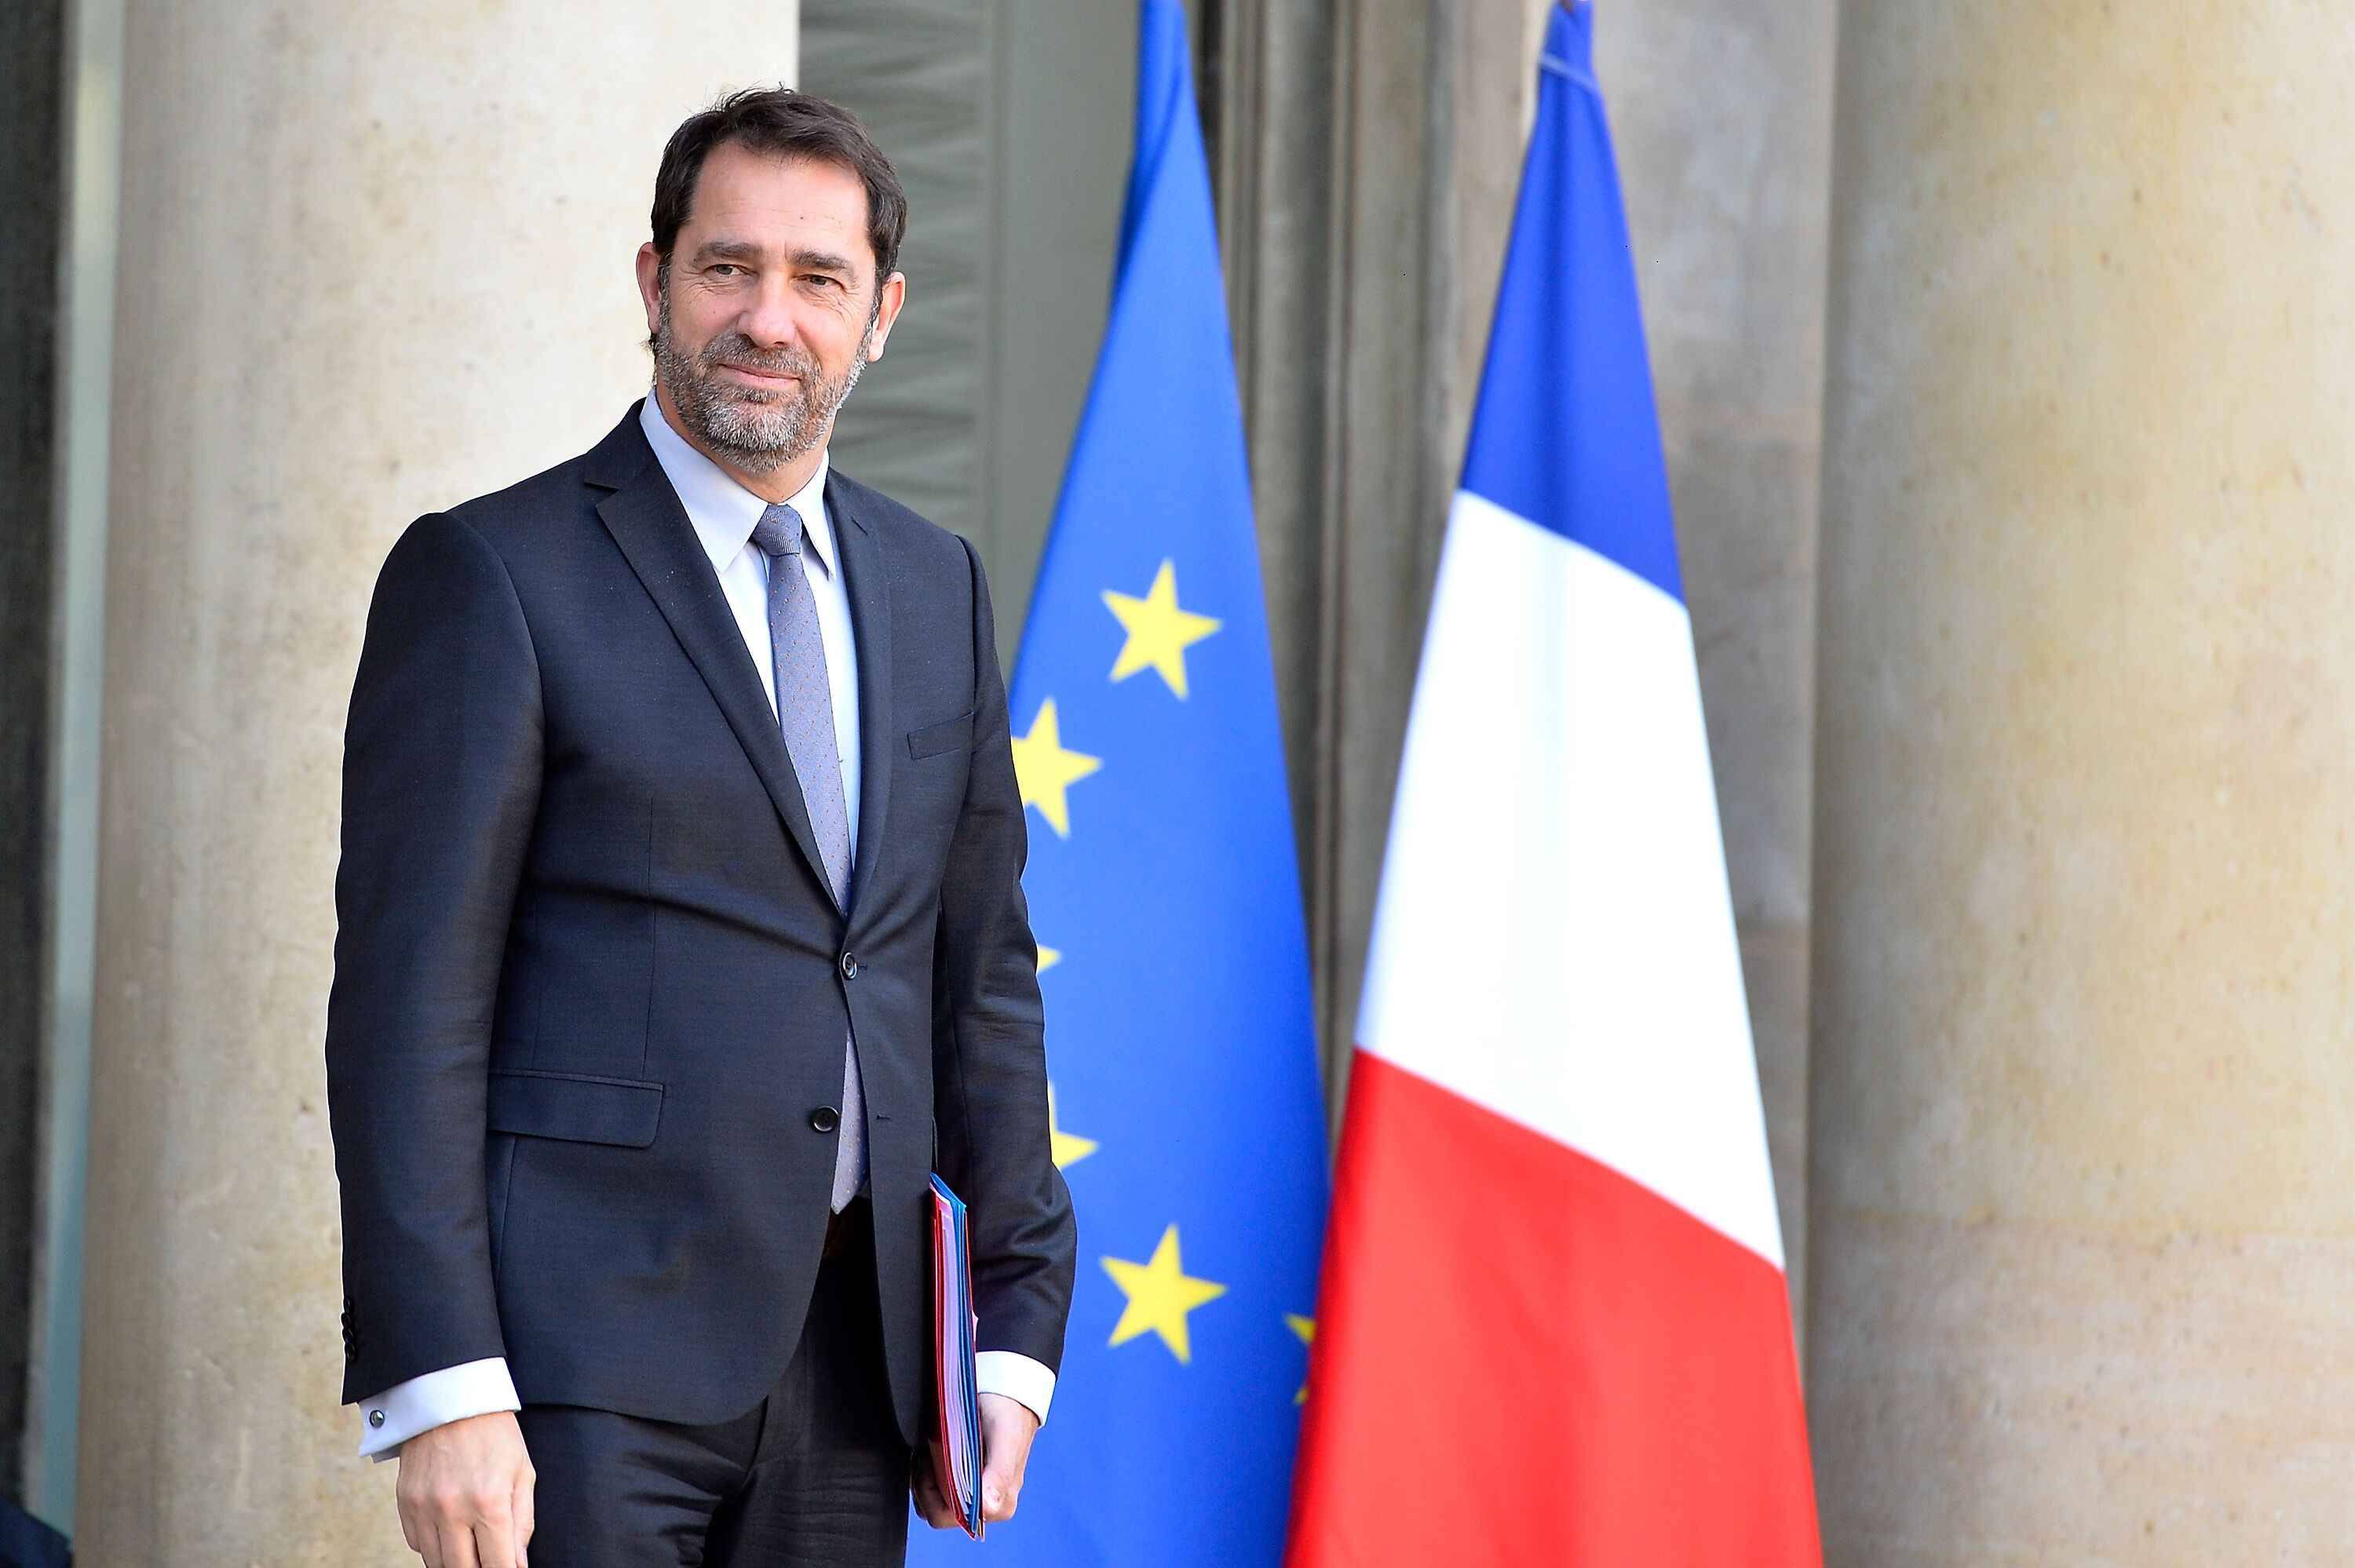 Christophe Castaner, ministre français quitte le Palais de l'Elysée après la réunion à Paris, France. | Photo : GettyImage